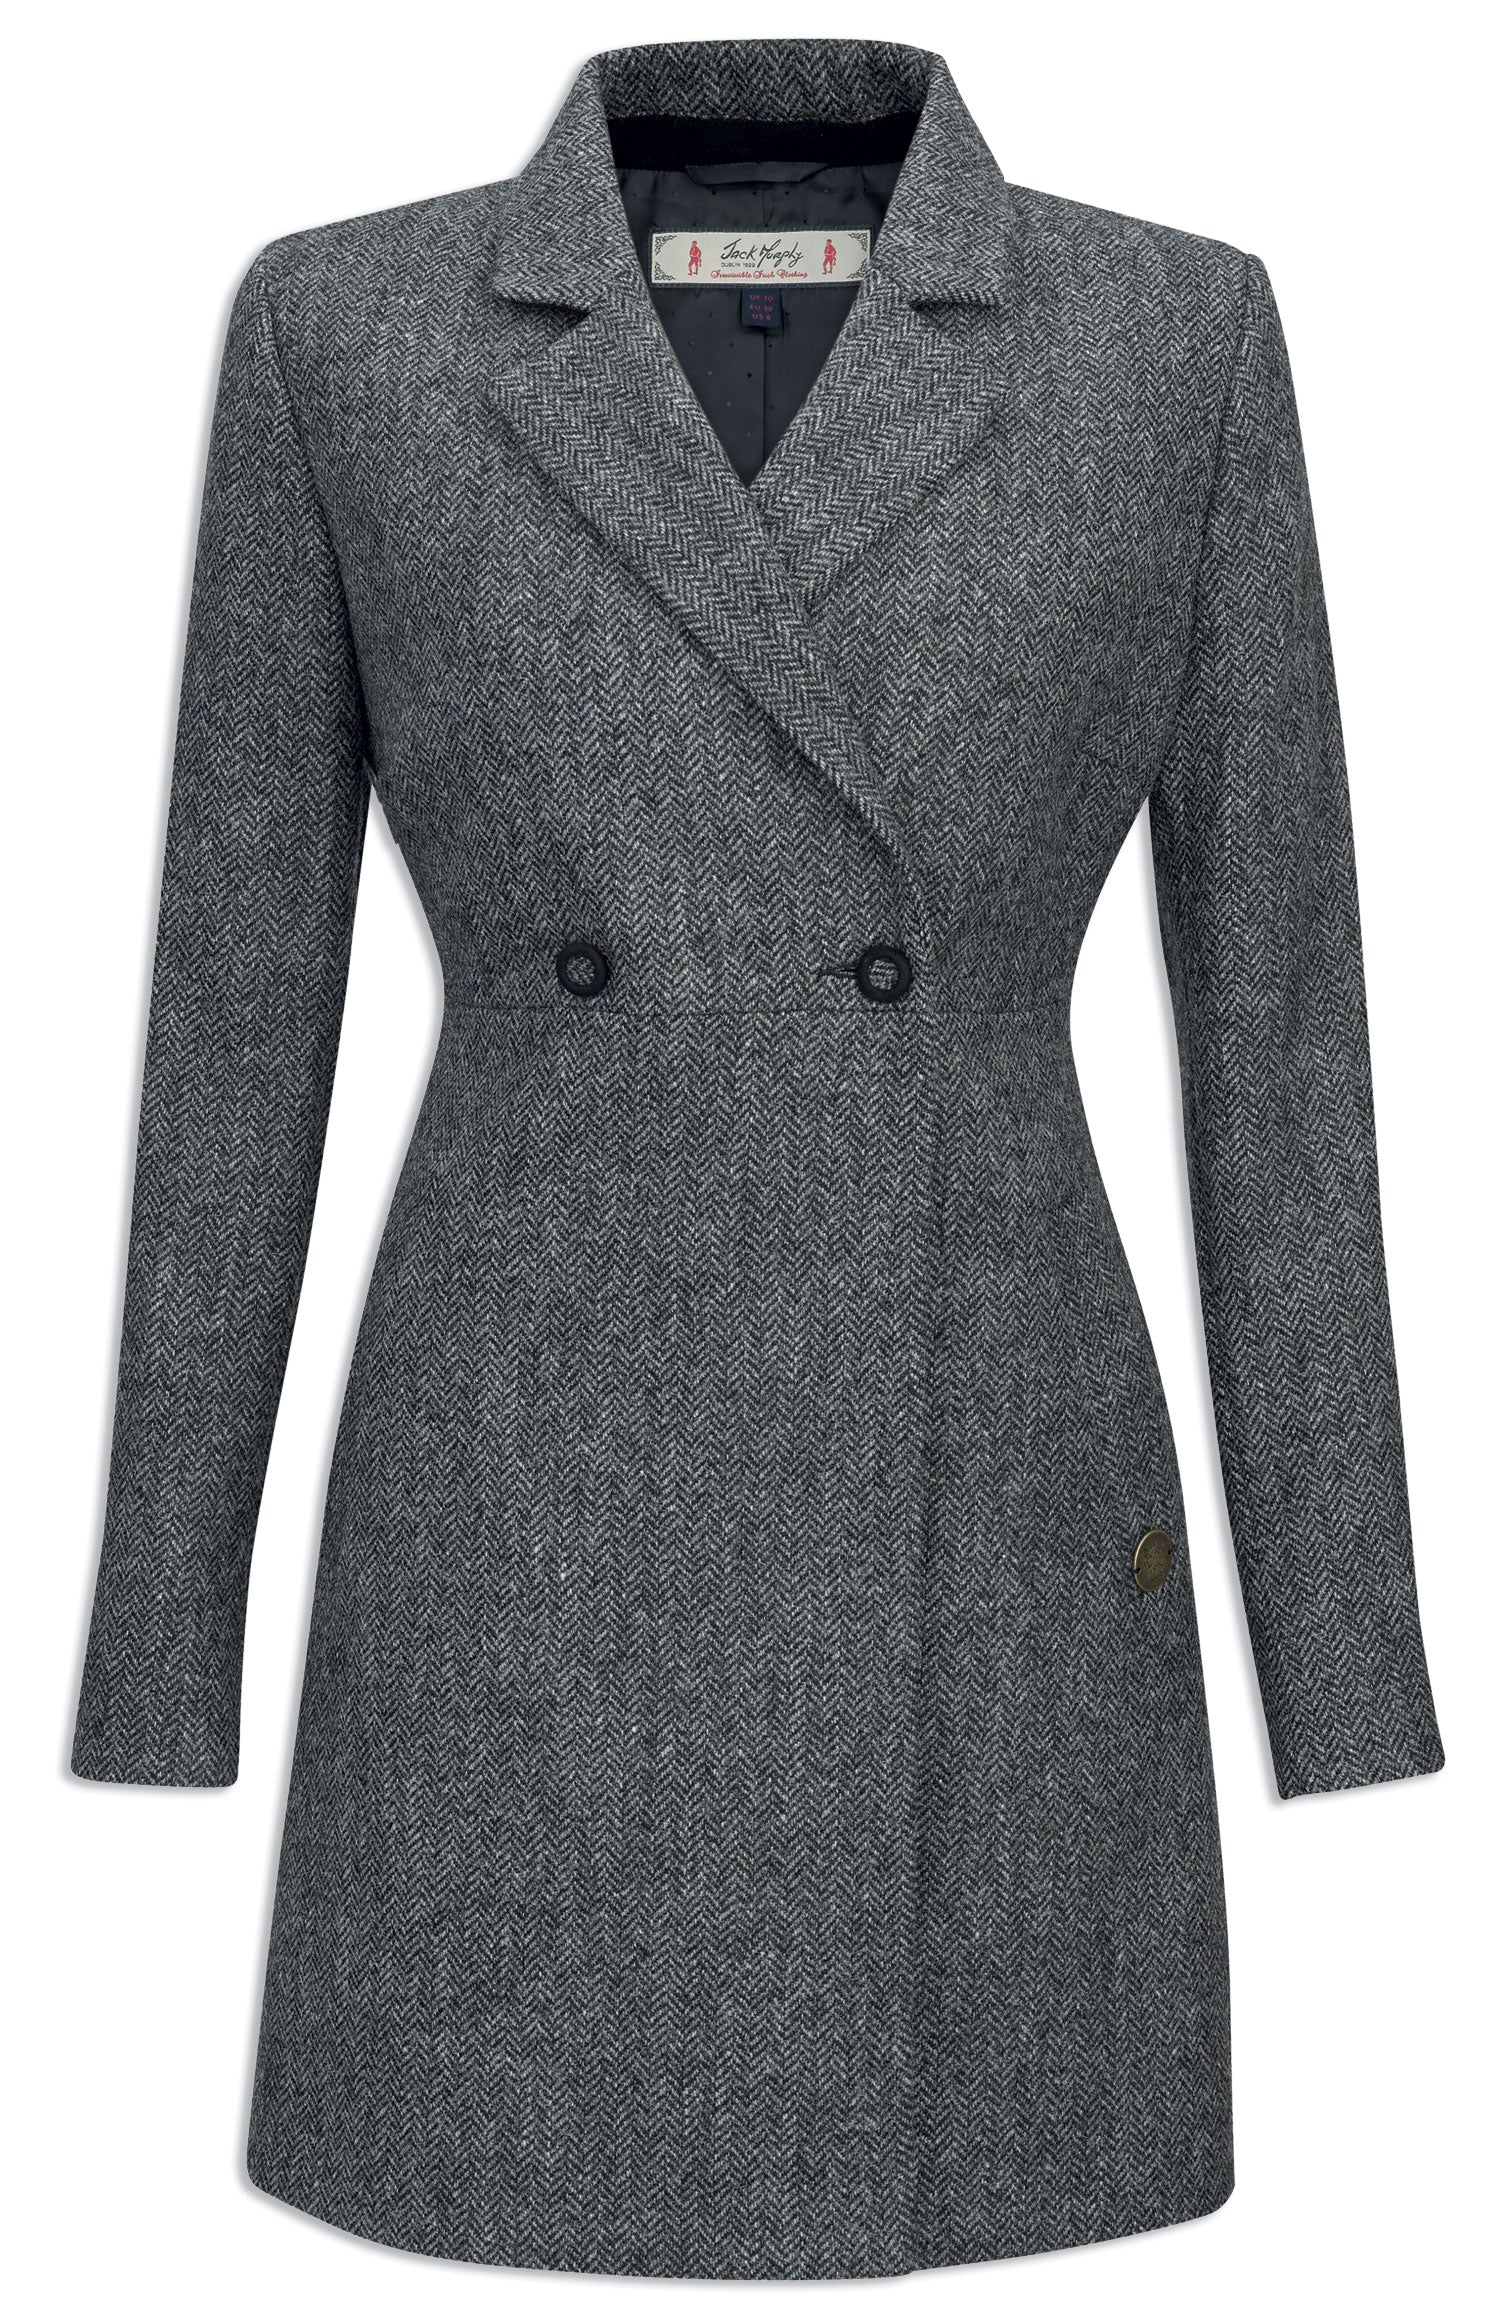 Jack Murphy Elena Tweed Coat - Black Herringbone